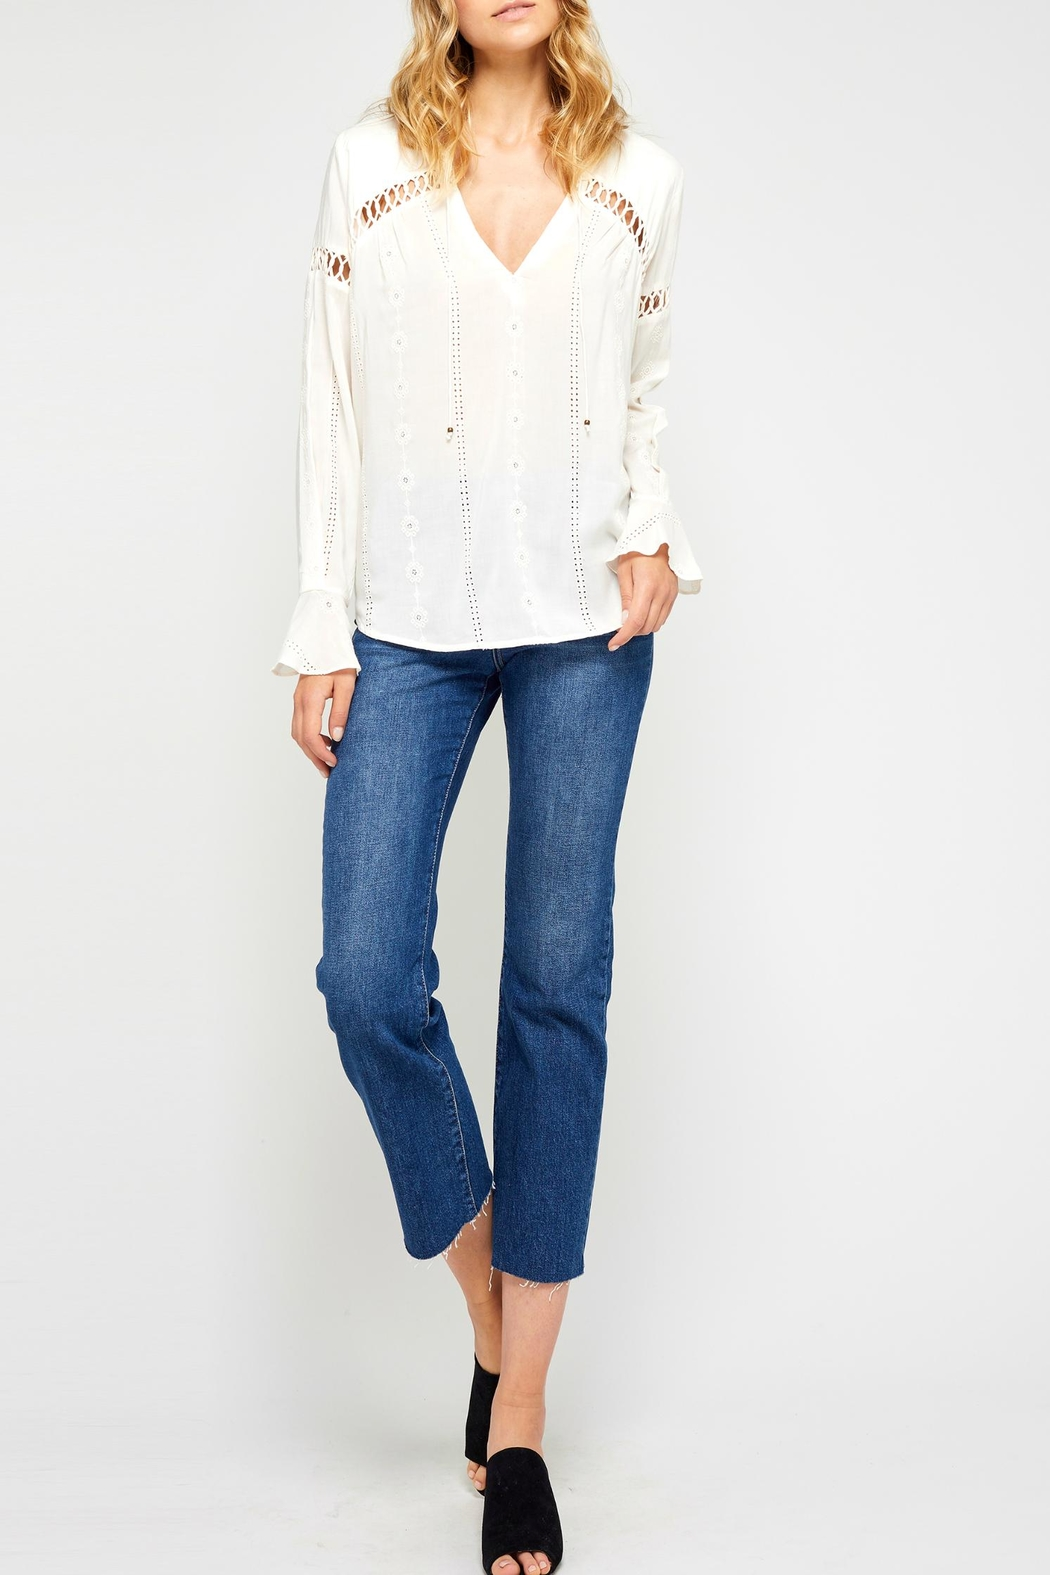 Gentle Fawn Carolyn Cream Blouse - Main Image